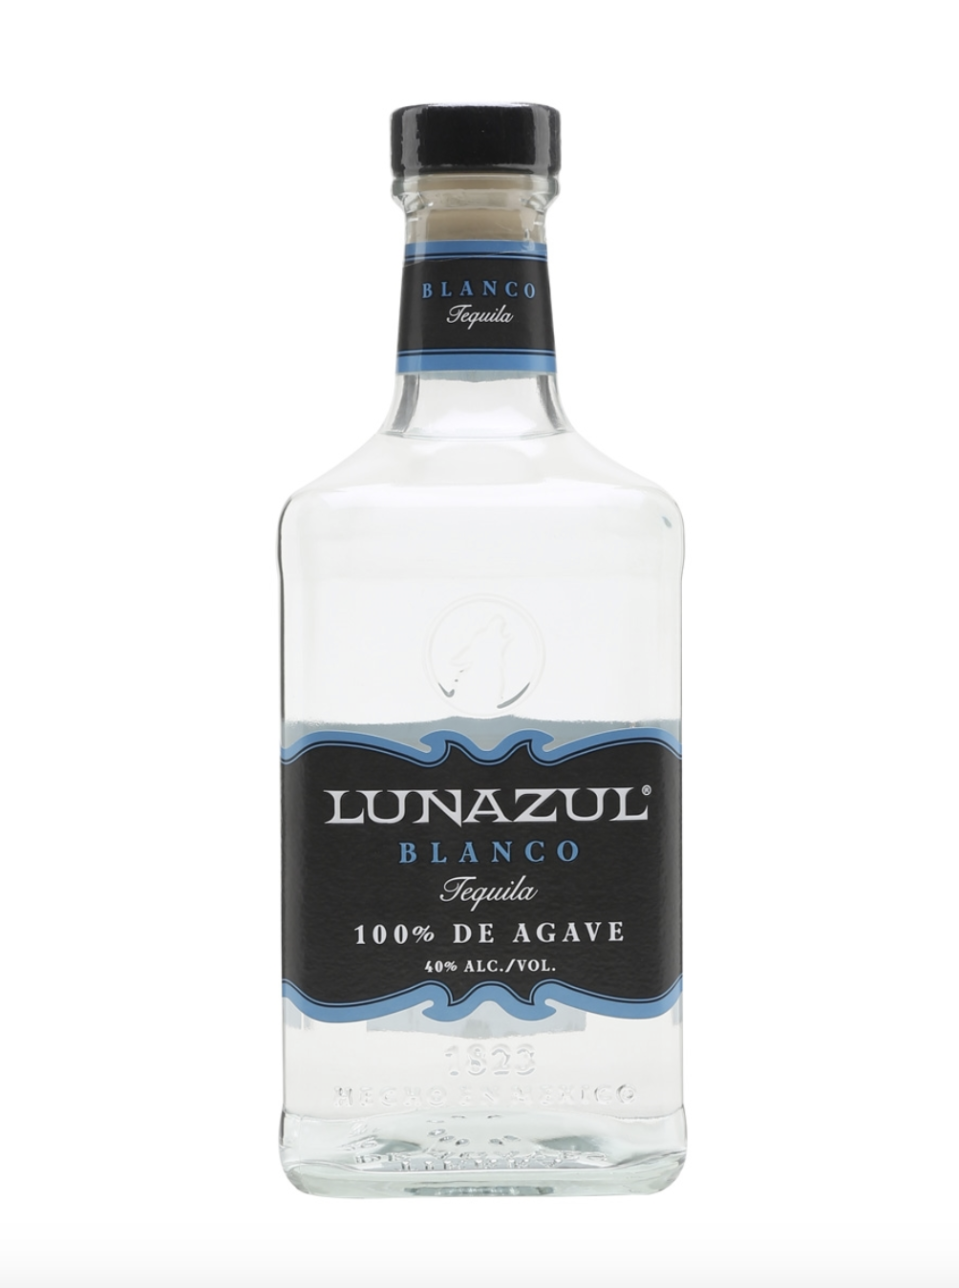 """<p><strong>Lunazul </strong></p><p>drizly.com</p><p><strong>$19.99</strong></p><p><a href=""""https://go.redirectingat.com?id=74968X1596630&url=https%3A%2F%2Fdrizly.com%2Fliquor%2Ftequila%2Fsilver-tequila%2Flunazul-tequila-blanco%2Fp13161&sref=https%3A%2F%2Fwww.cosmopolitan.com%2Flifestyle%2Fg33366201%2Fbest-cheap-liquor%2F"""" rel=""""nofollow noopener"""" target=""""_blank"""" data-ylk=""""slk:Shop Now"""" class=""""link rapid-noclick-resp"""">Shop Now</a></p><p>I had to learn the hard way that you can't play around with cheap tequila. But you can skip the headaches and stay within your budget if you add this one to your bar cart.</p>"""